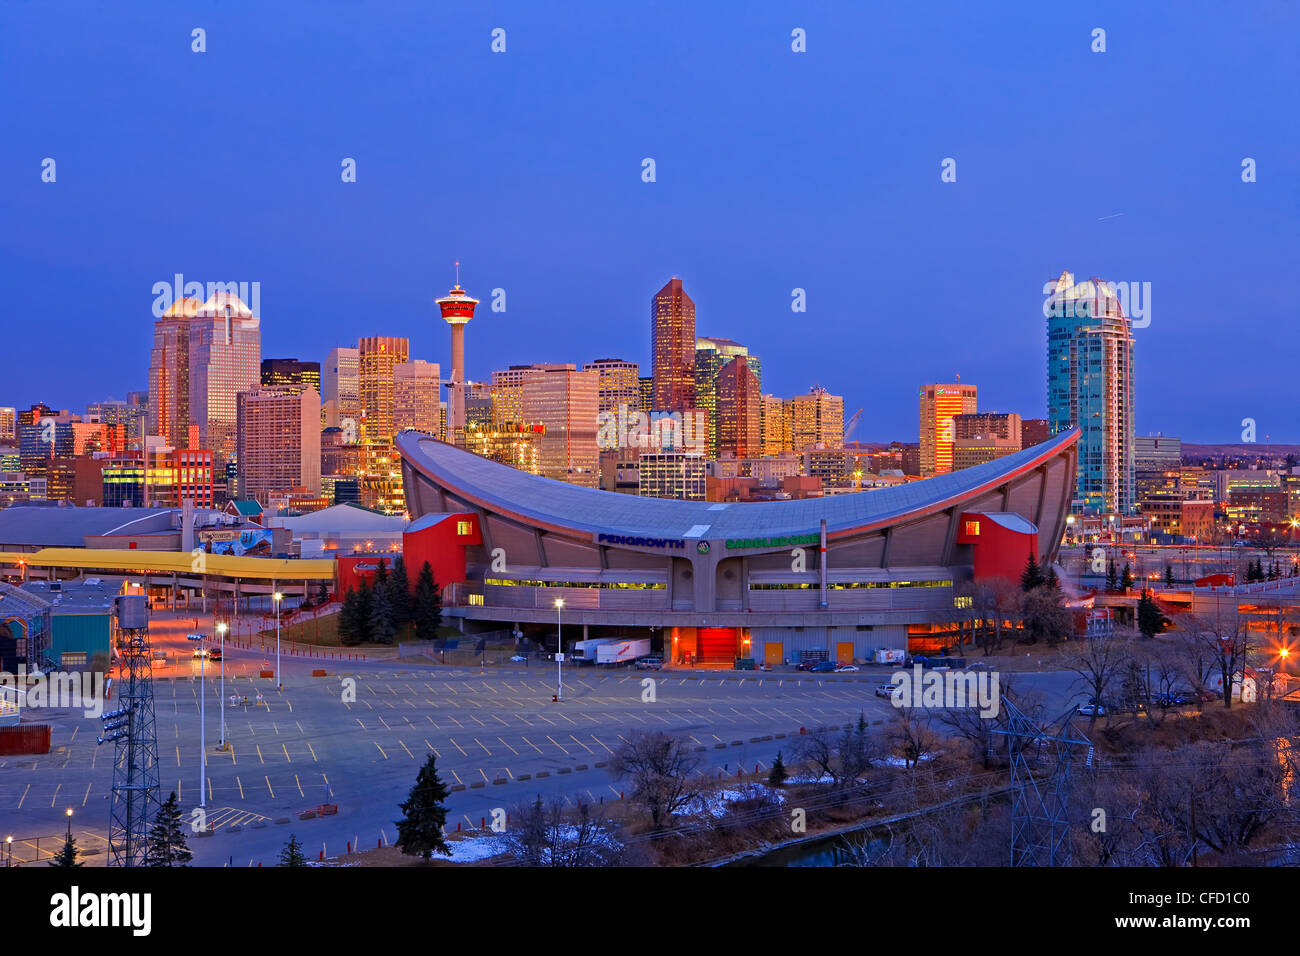 The Saddledome With High Rise Buildings And The Calgary